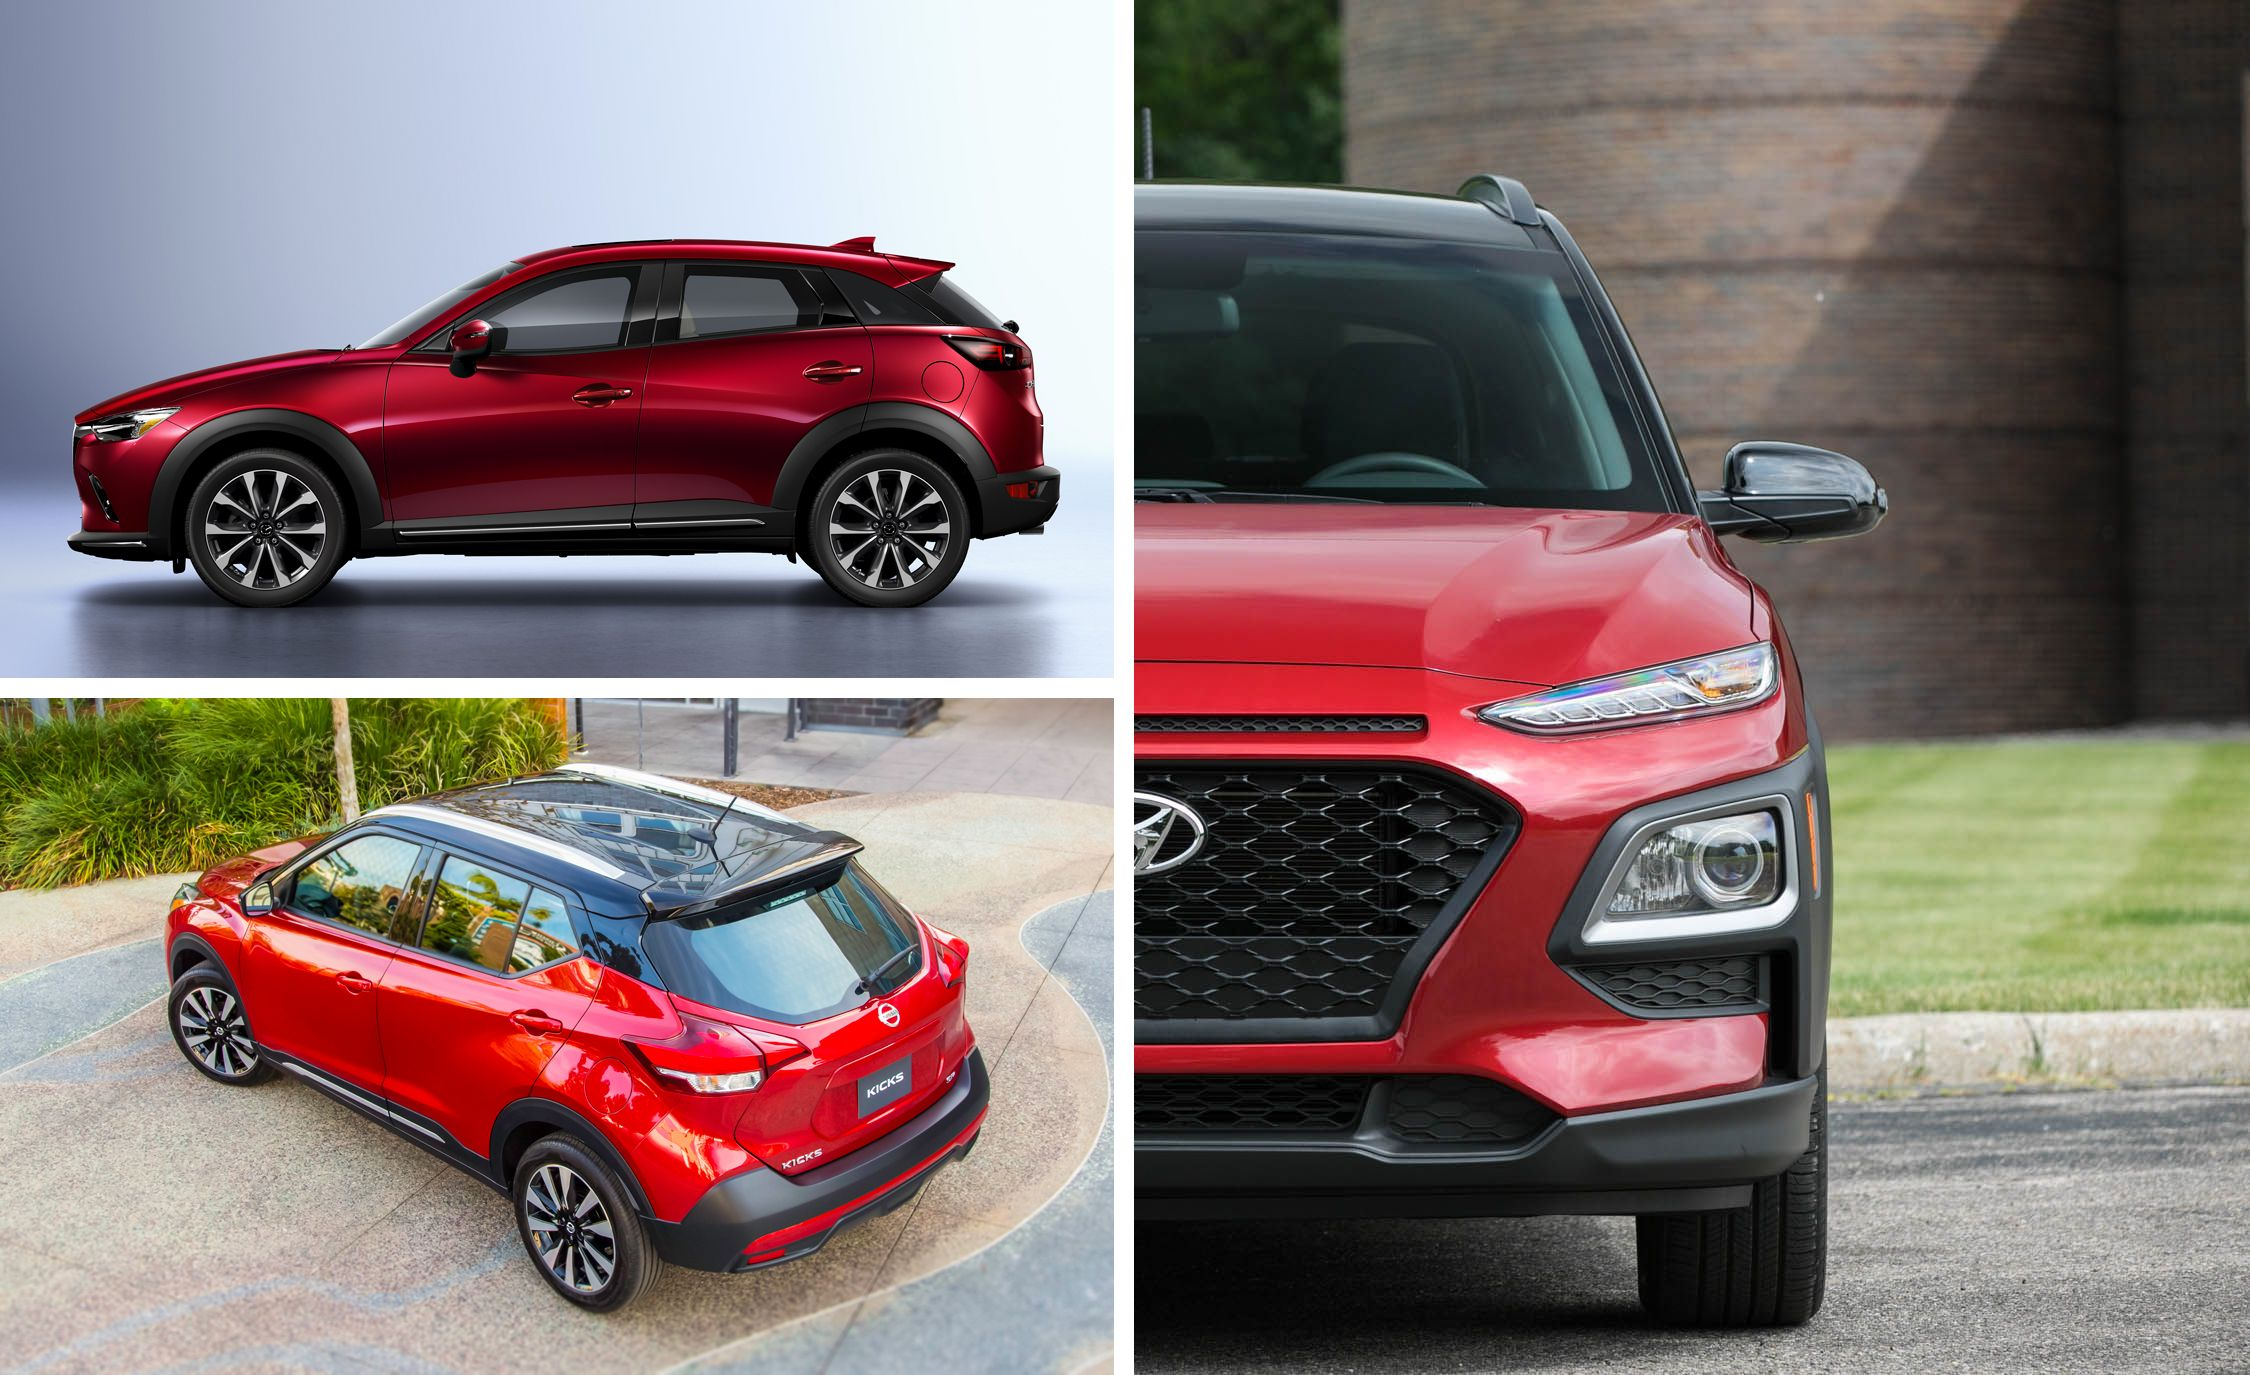 The 17 Best New Subcompact Crossover SUVs of 2019 – Small SUVs, Ranked